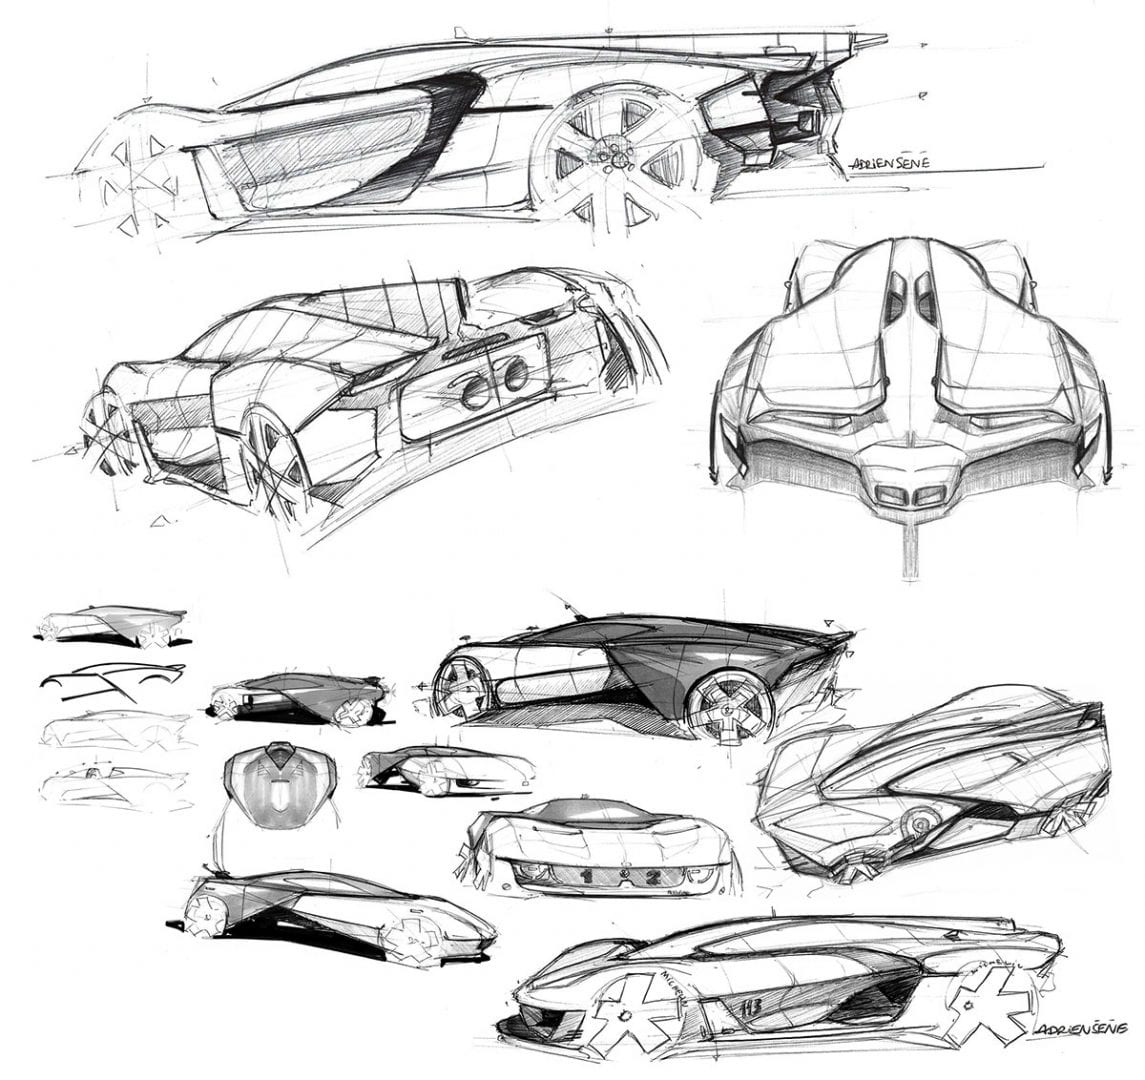 Bell-and-Ross-AeroGT-Concept-Design-Sketches-by-Adriene-Sene-02